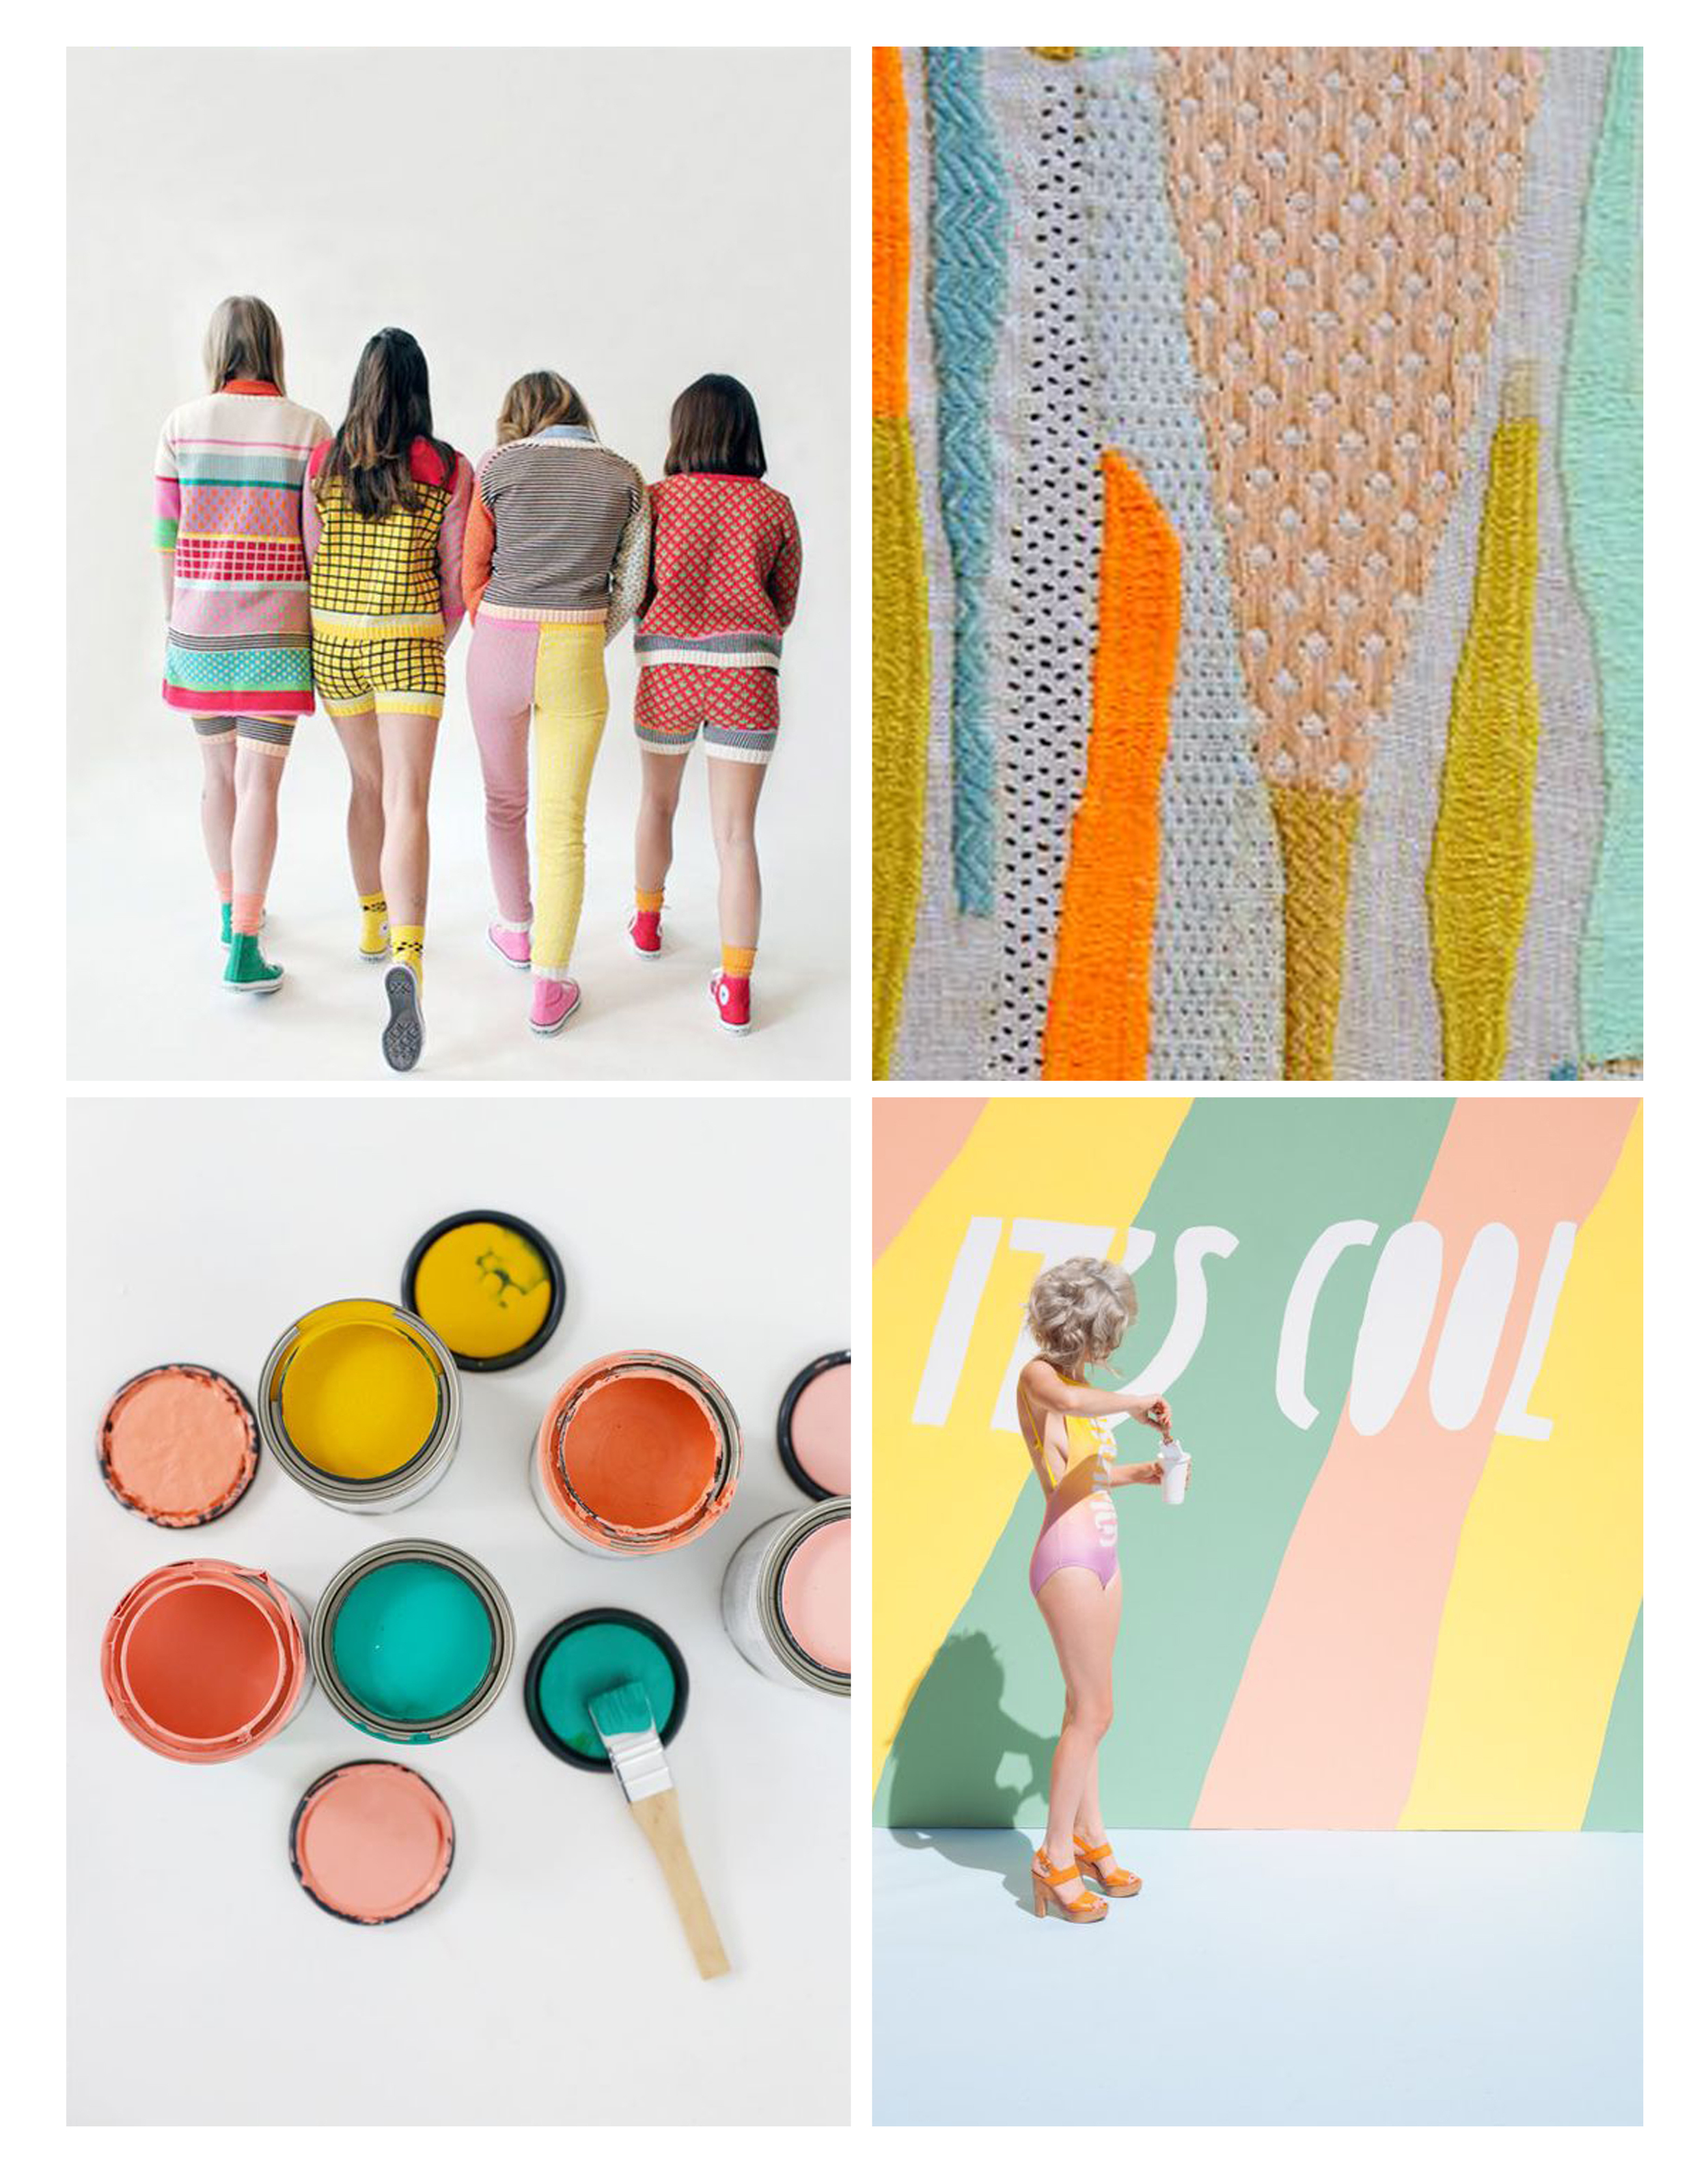 WEEKLY INSPIRATION WITH MONDAY MOOD BOARD 52 | THE PAPER CURATOR